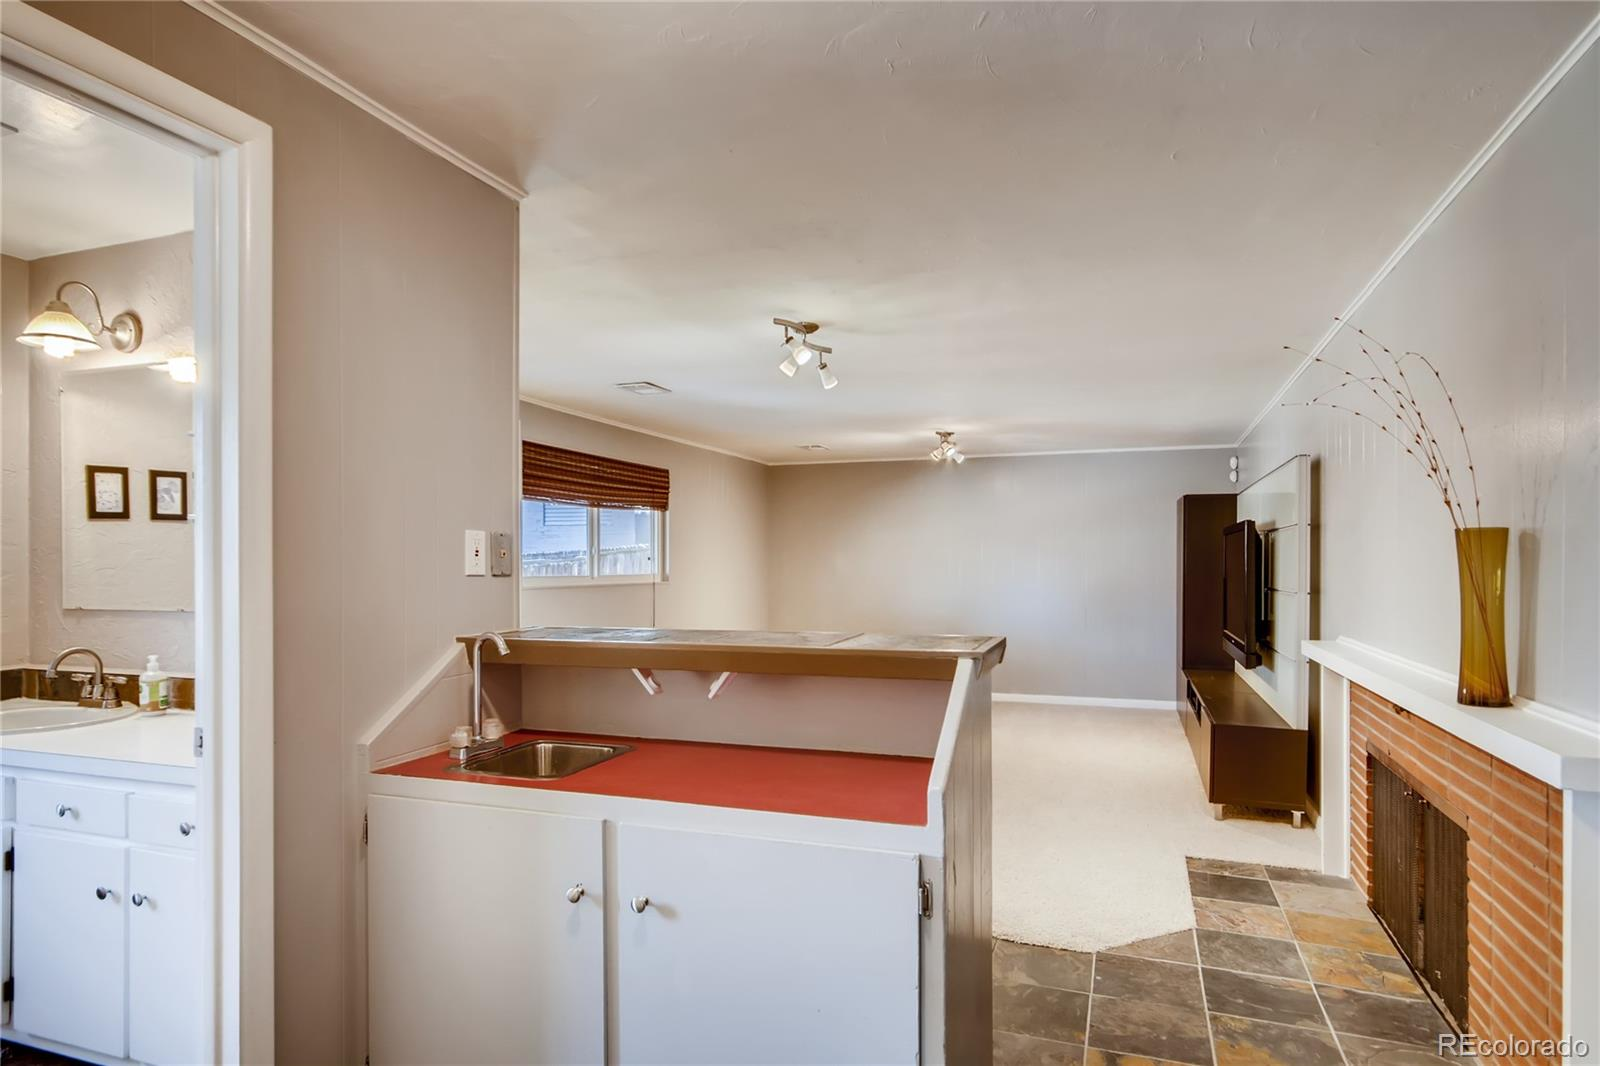 MLS# 9197299 - 22 - 10511 W 22nd Place, Lakewood, CO 80215